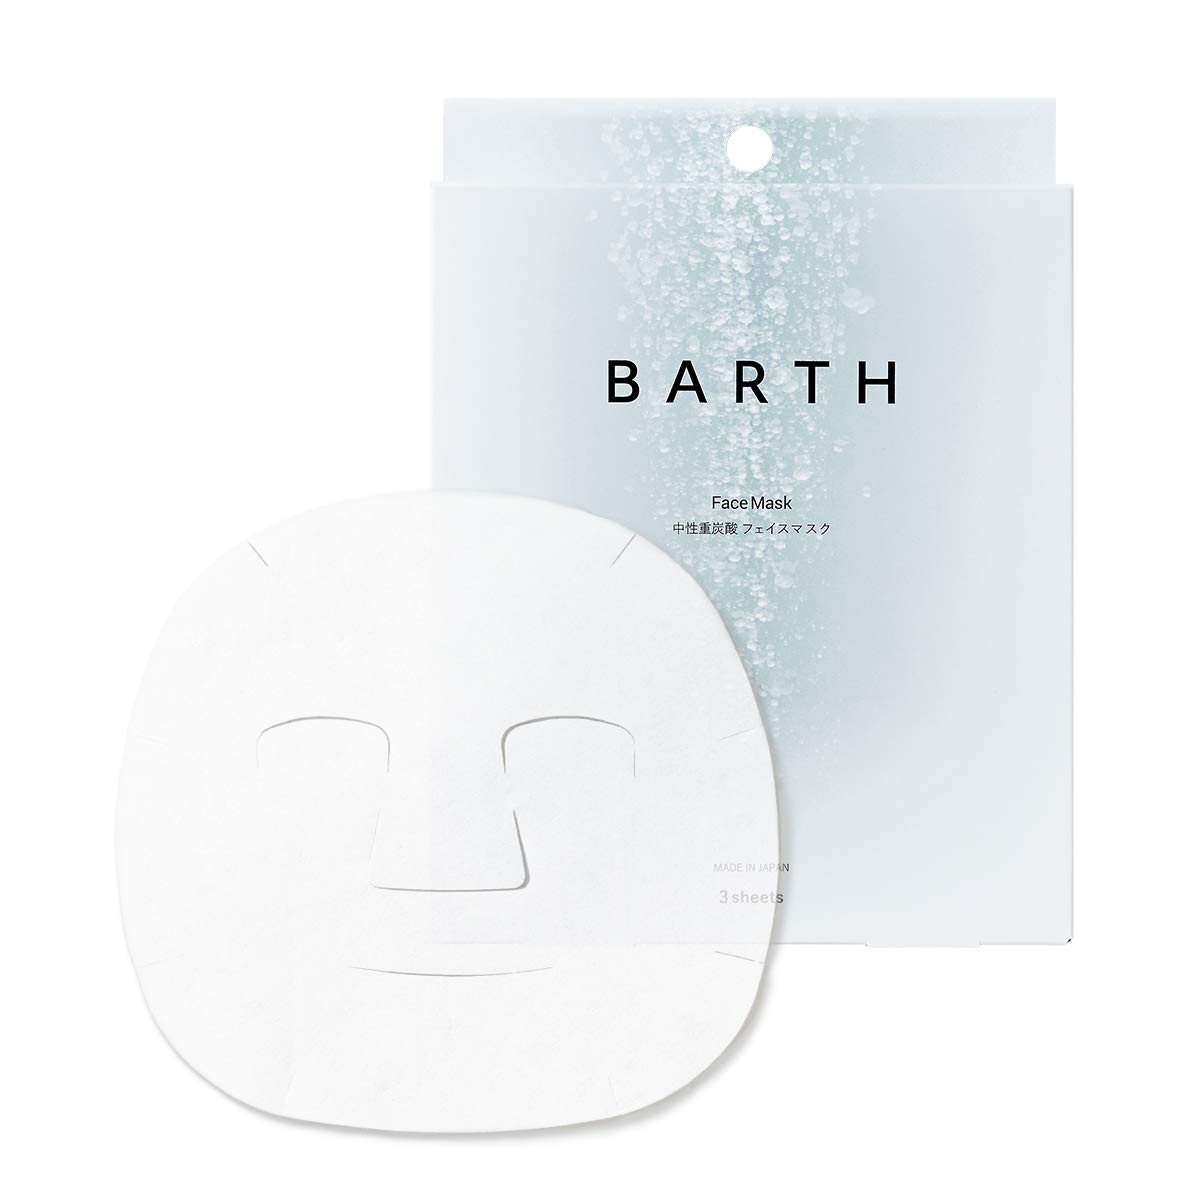 Barth Birth Mild Weight Carbonate Face Mask 3Bao with Wholesale M Long Beach Mall FREE